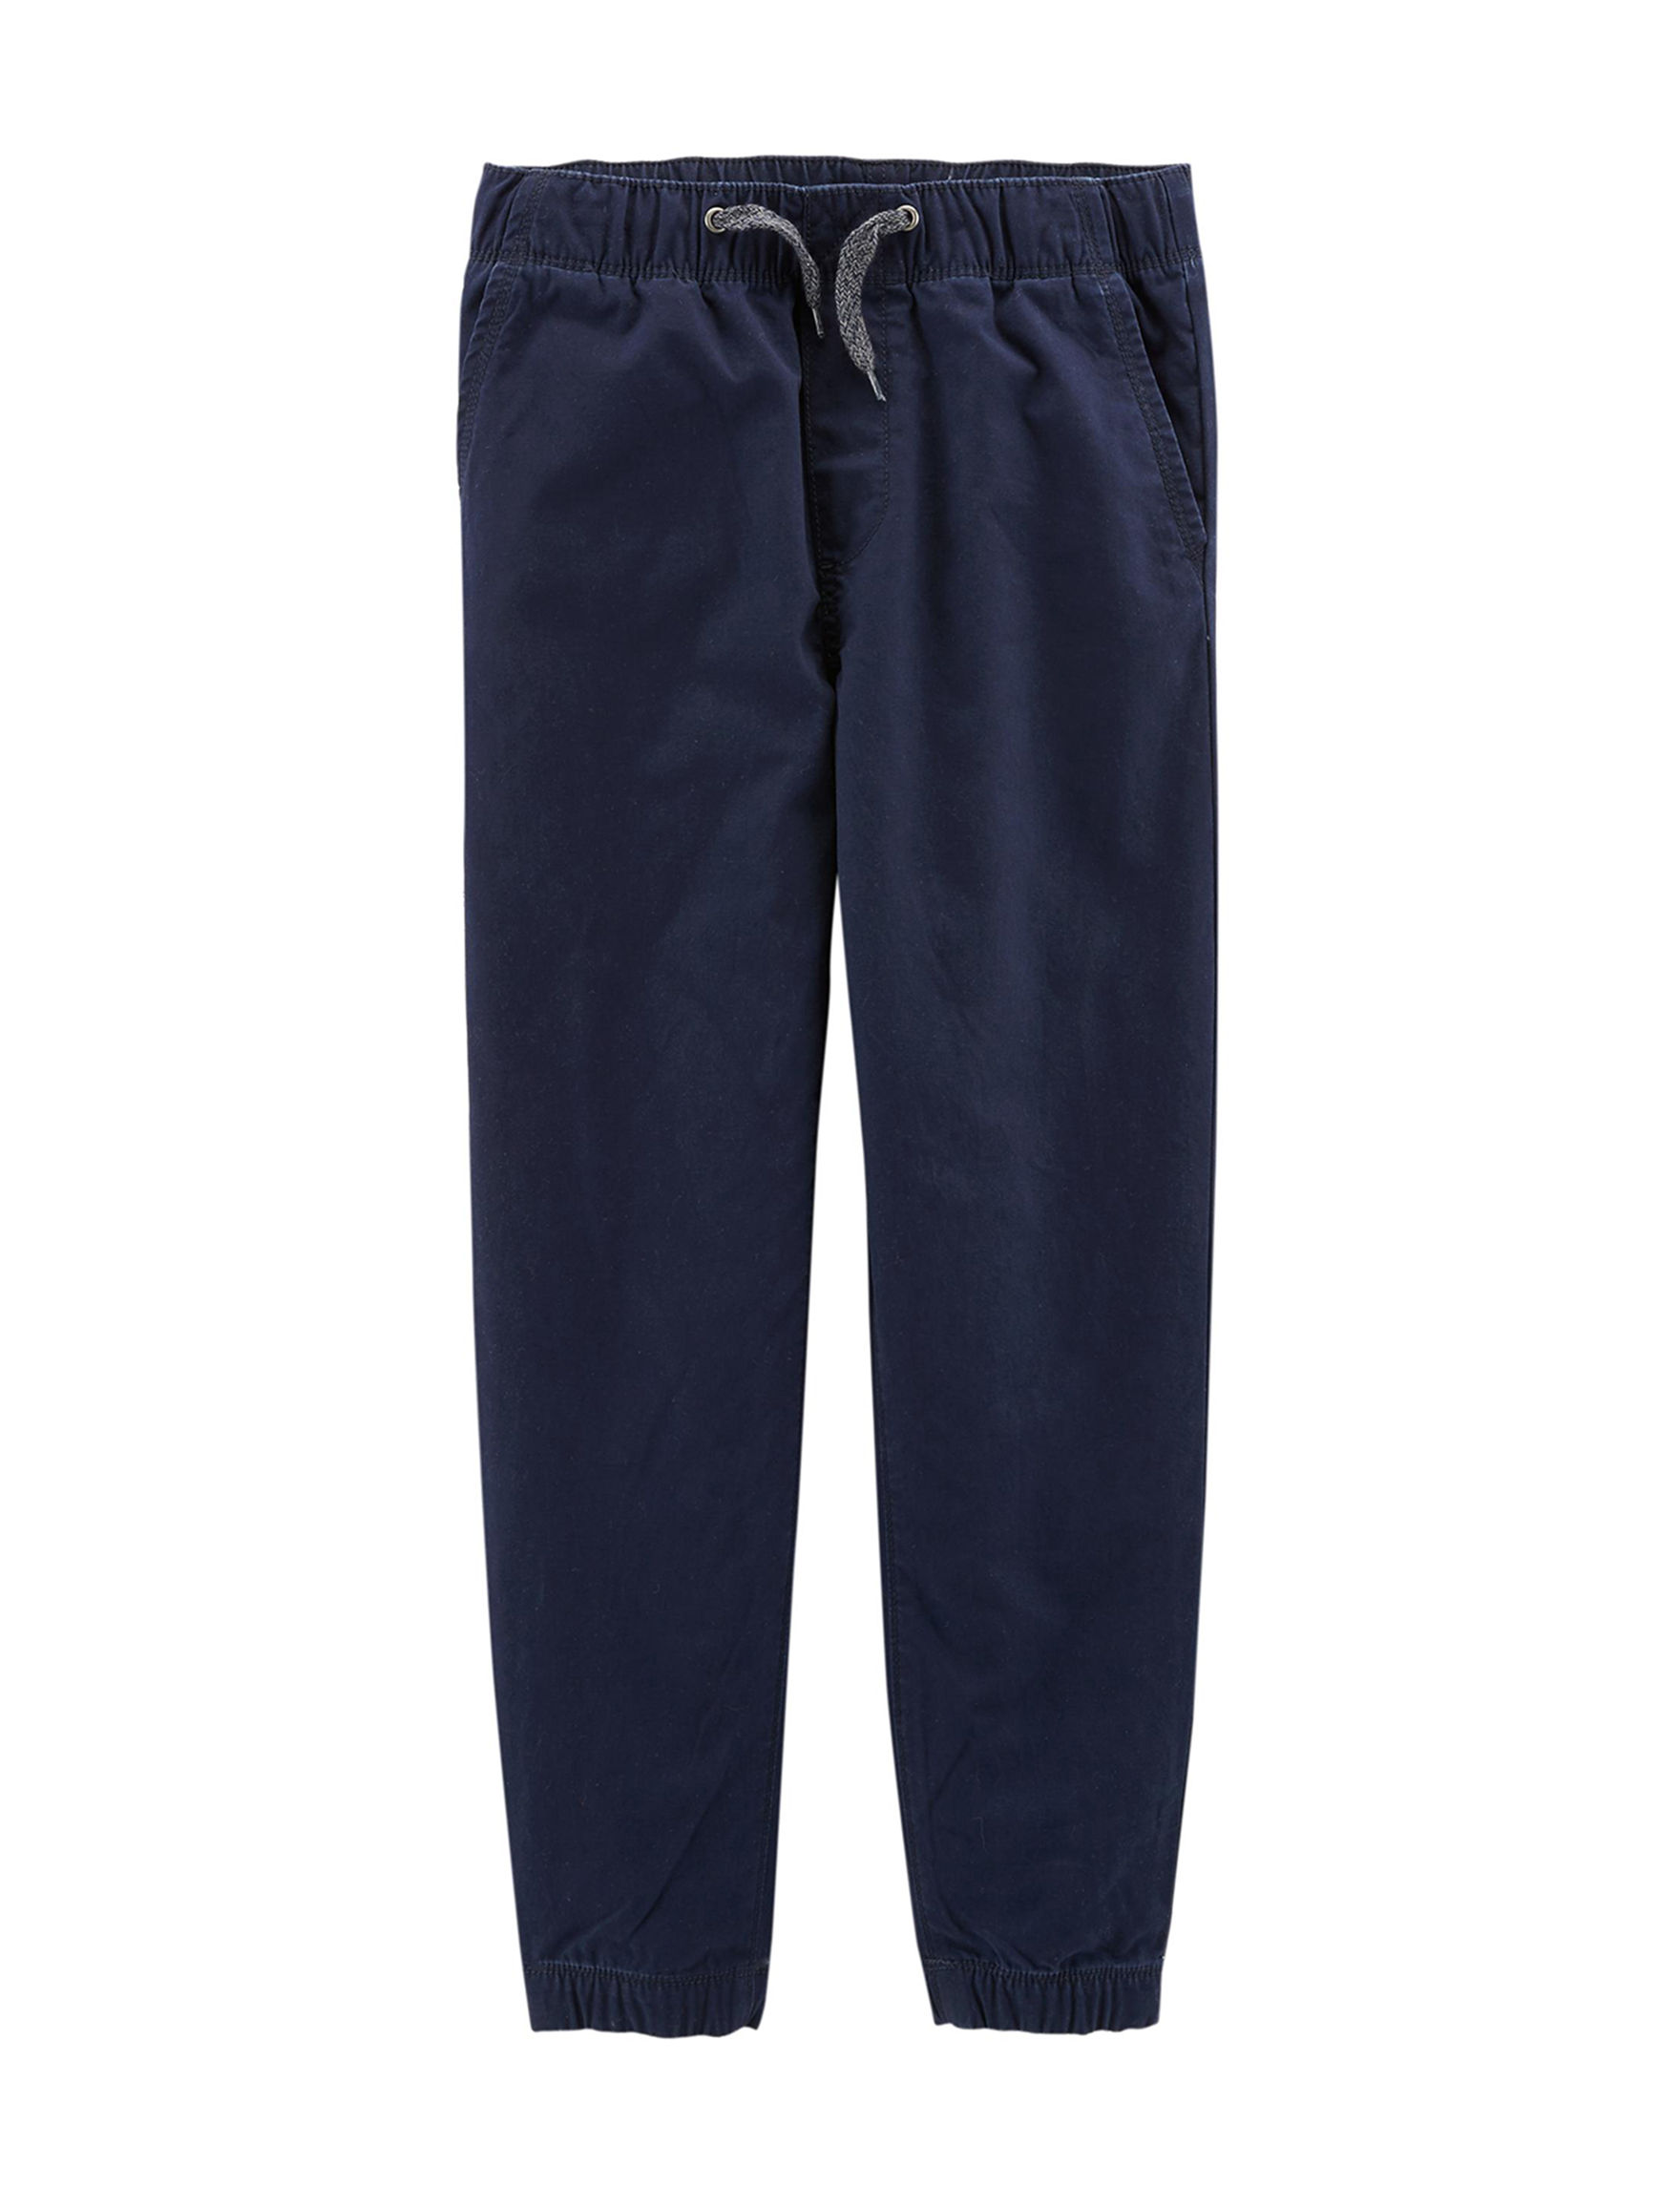 Oshkosh B'Gosh Navy Soft Pants